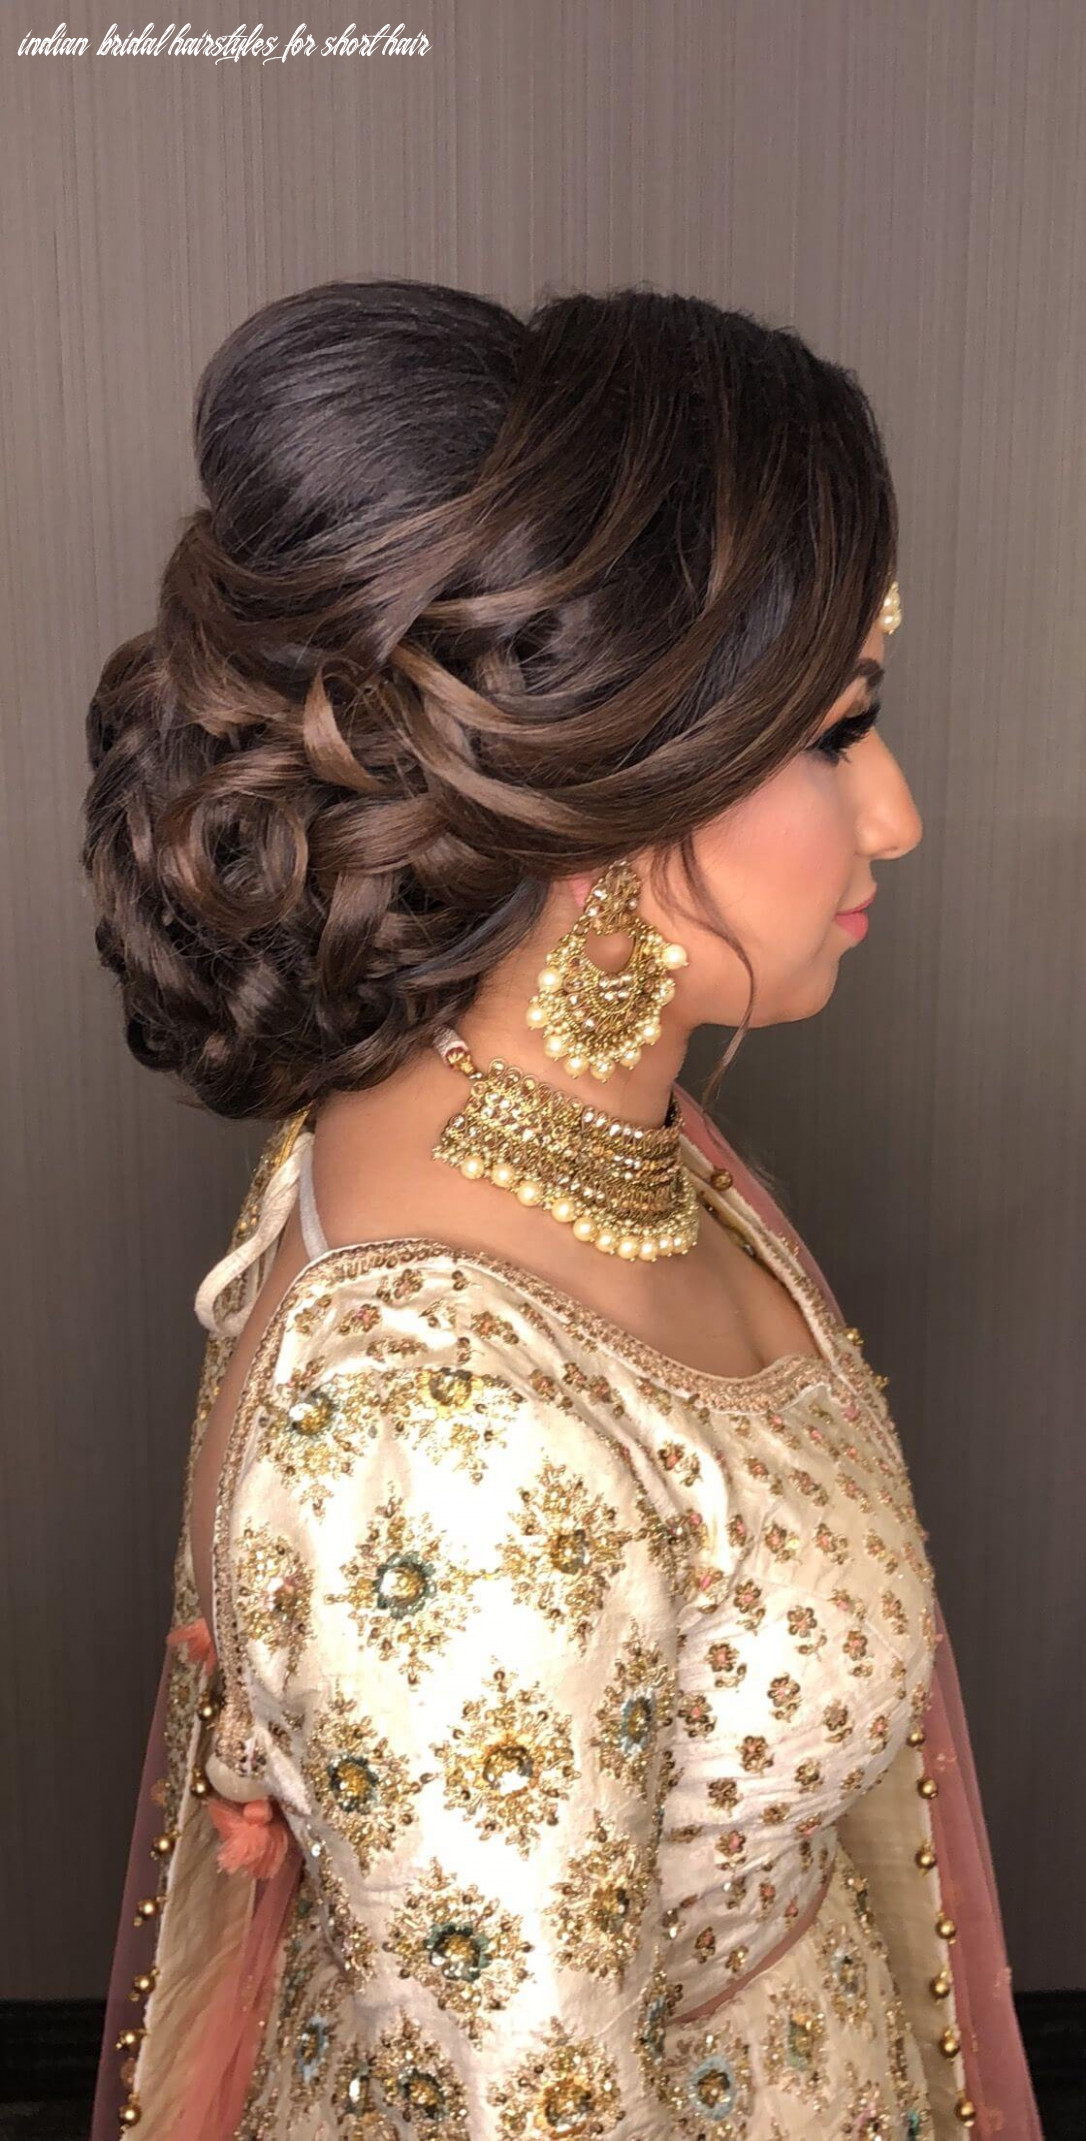 Hairstyles for short hair for indian wedding 8 indian bridal hairstyles for short hair